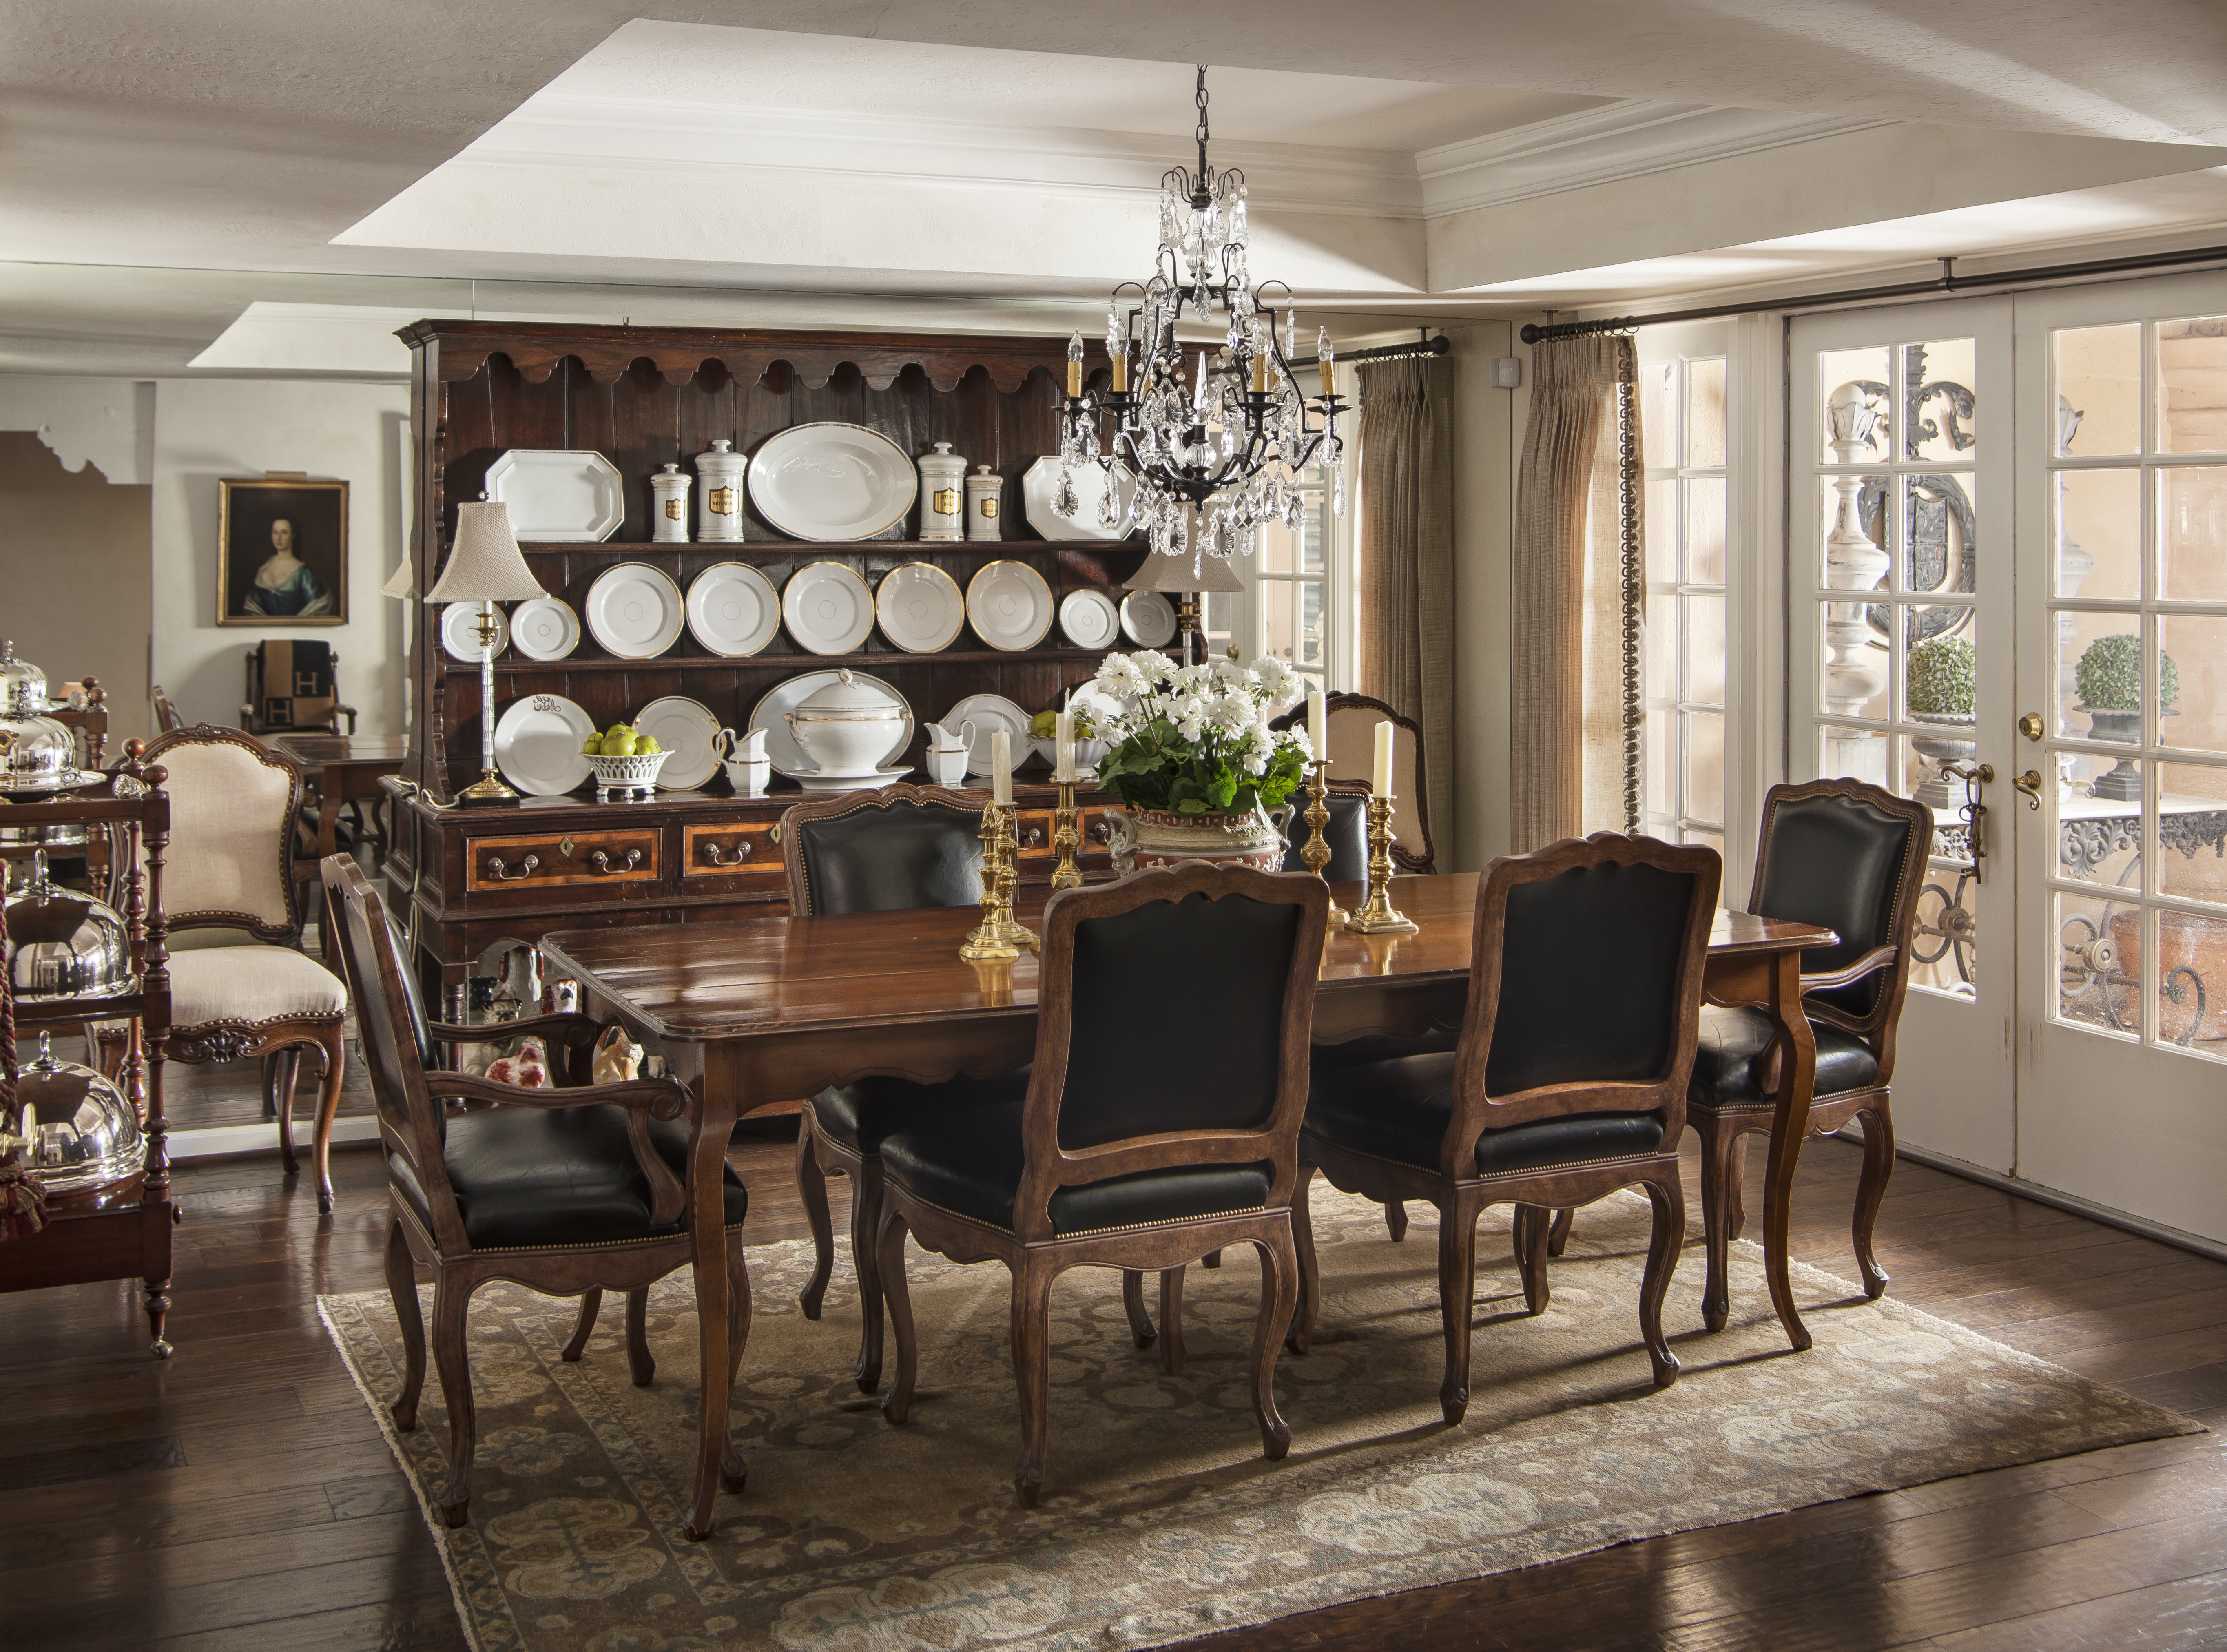 Classic Formal Dining Room With Wooden Furniture And Buffet Set (View 30 of 30)